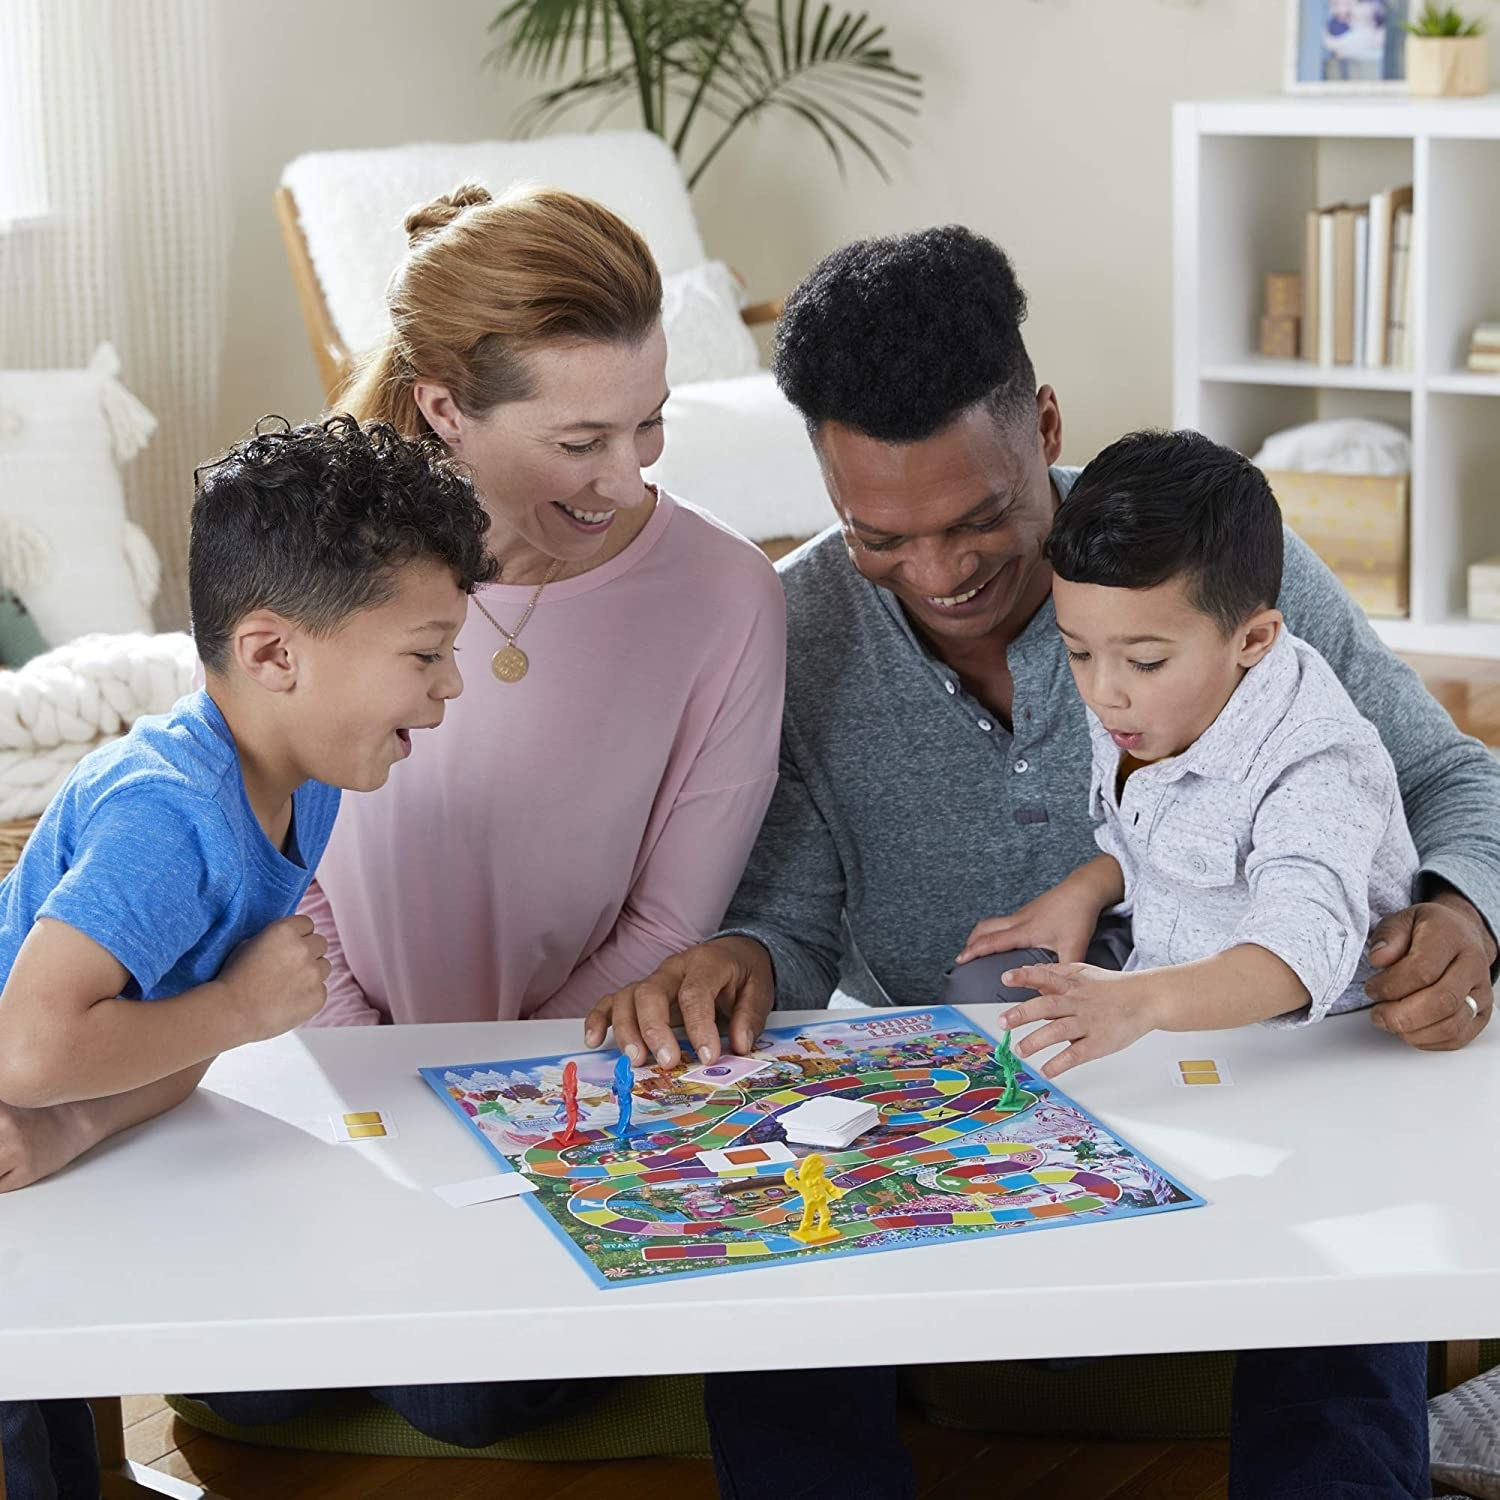 Two adults and two kids sitting in front of a small table with a board game on top